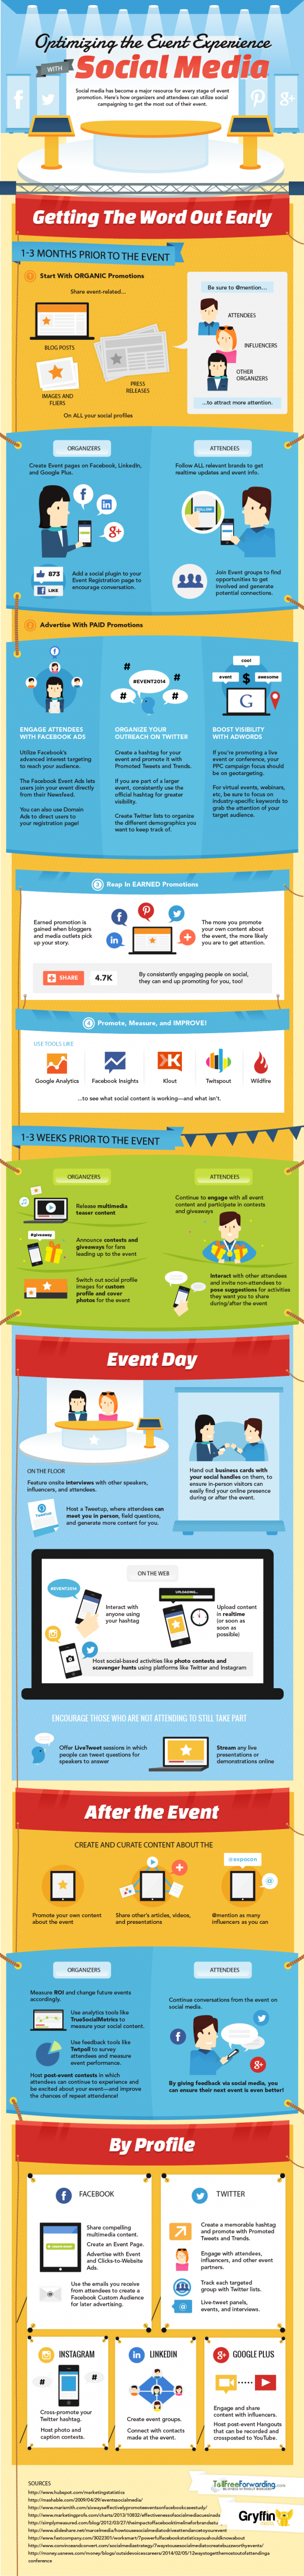 Using Social to Promote Events